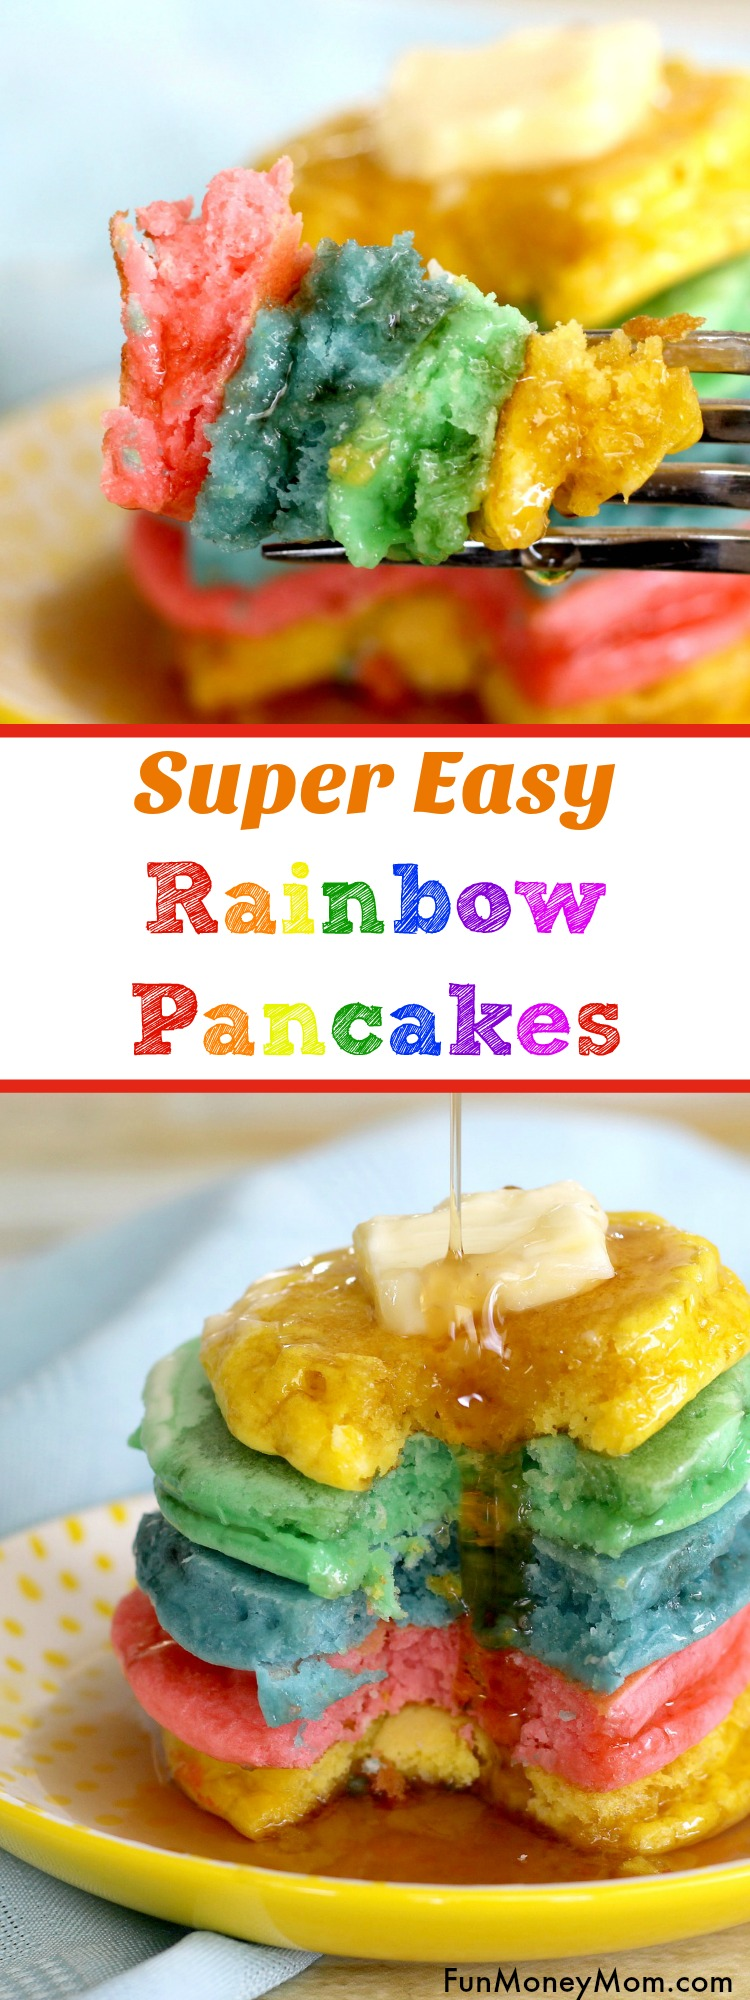 Why not surprise the kids with a fun breakfast?! Waking up will be easy when you're serving these easy Rainbow Pancakes. They make a great St. Patrick's Day recipe too!